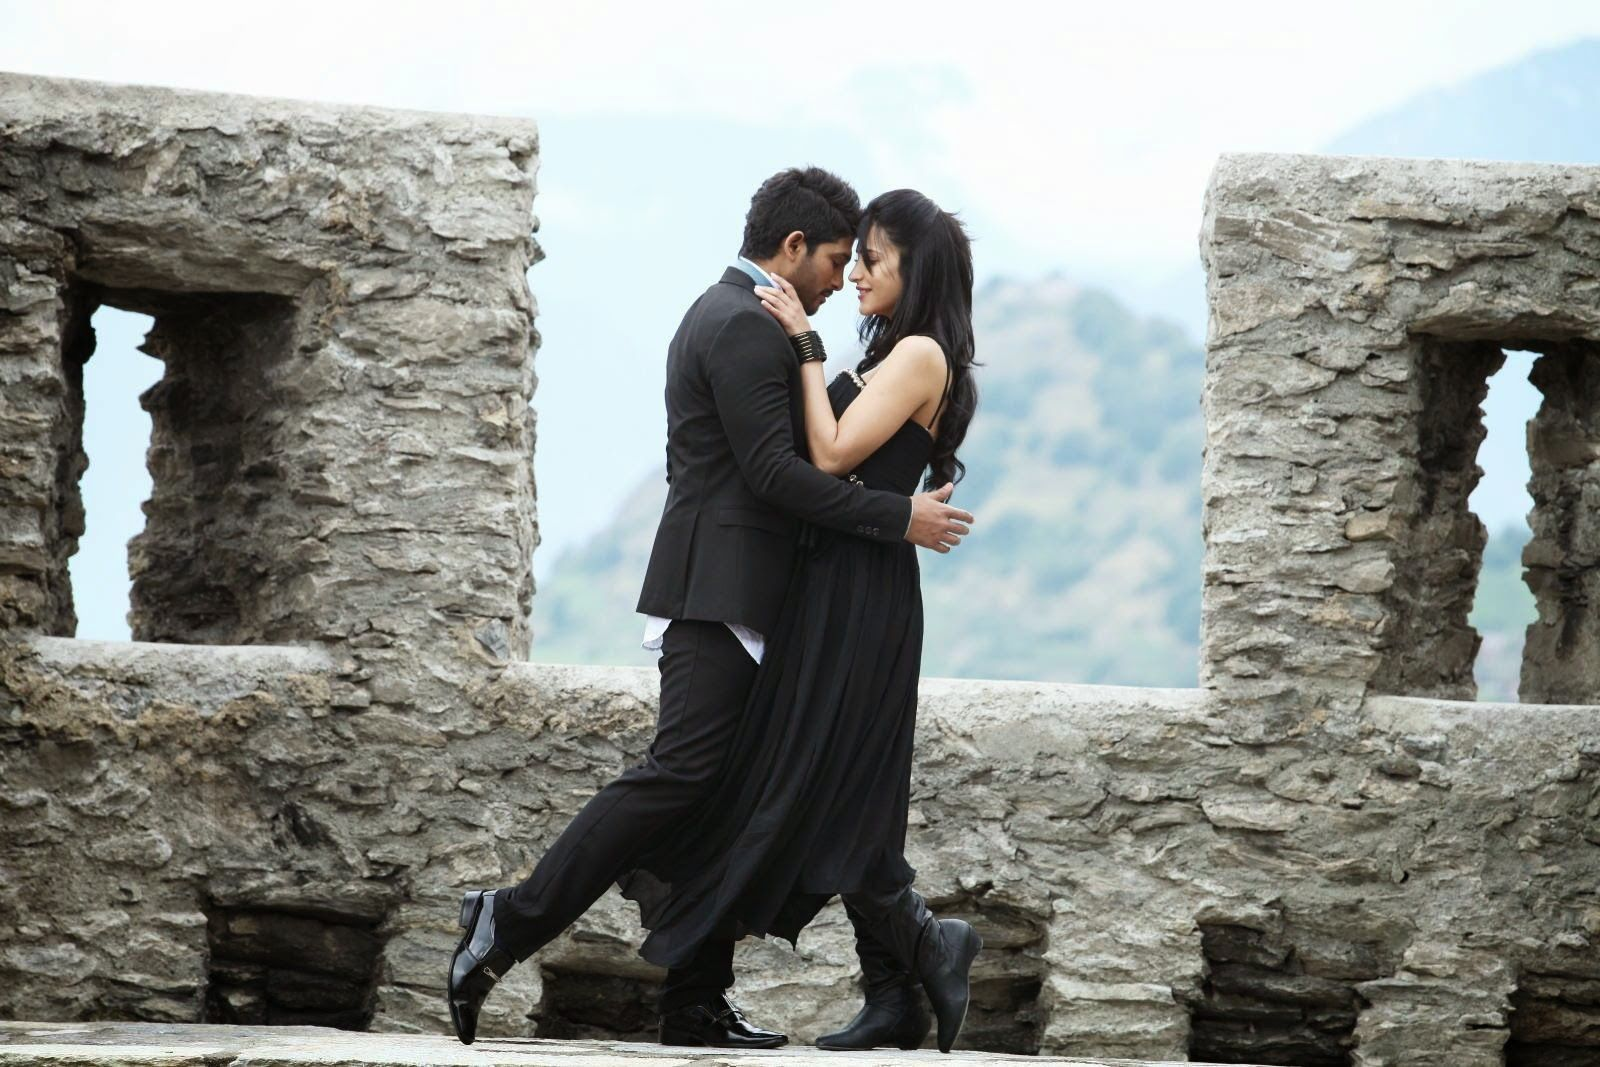 A BIG ONE for Allu Arjun and Shruti Haasan - Race Gurram completes 4 years!